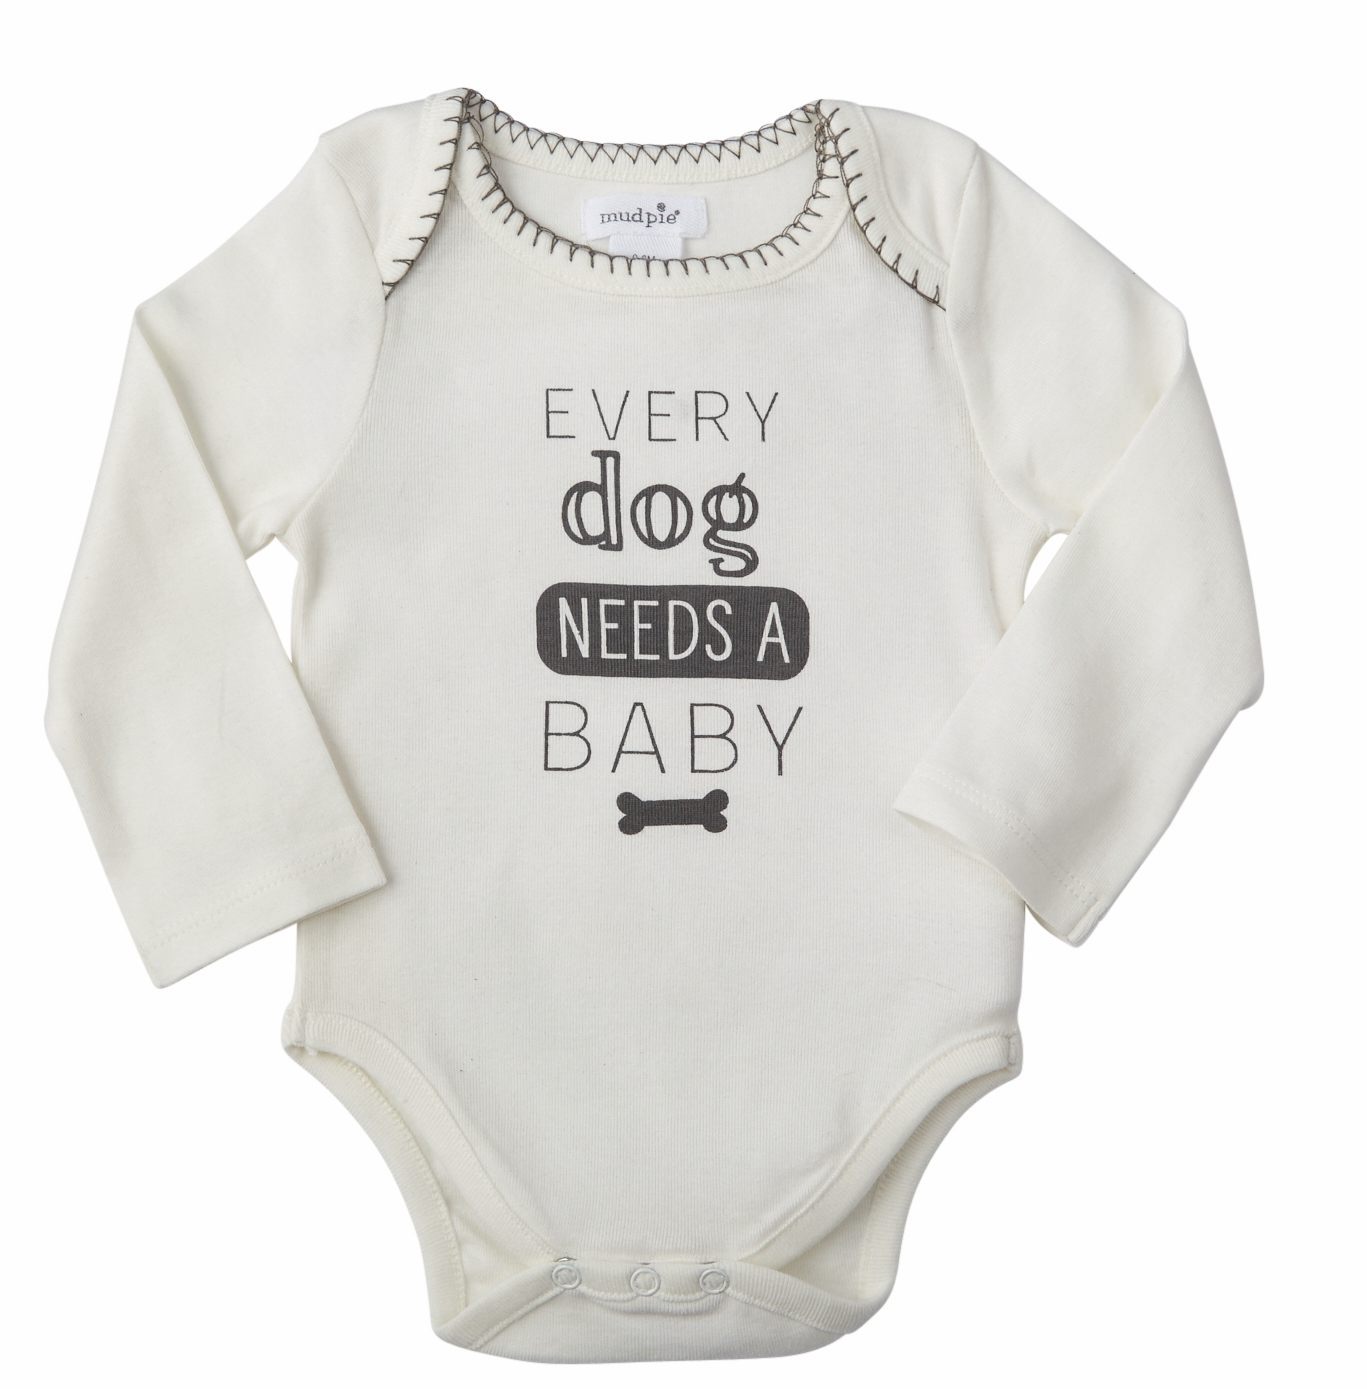 DIGGER BODY SUIT PERSONALISED MUMMY/'S LITTLE BABY GROW NEWBORN GIFT